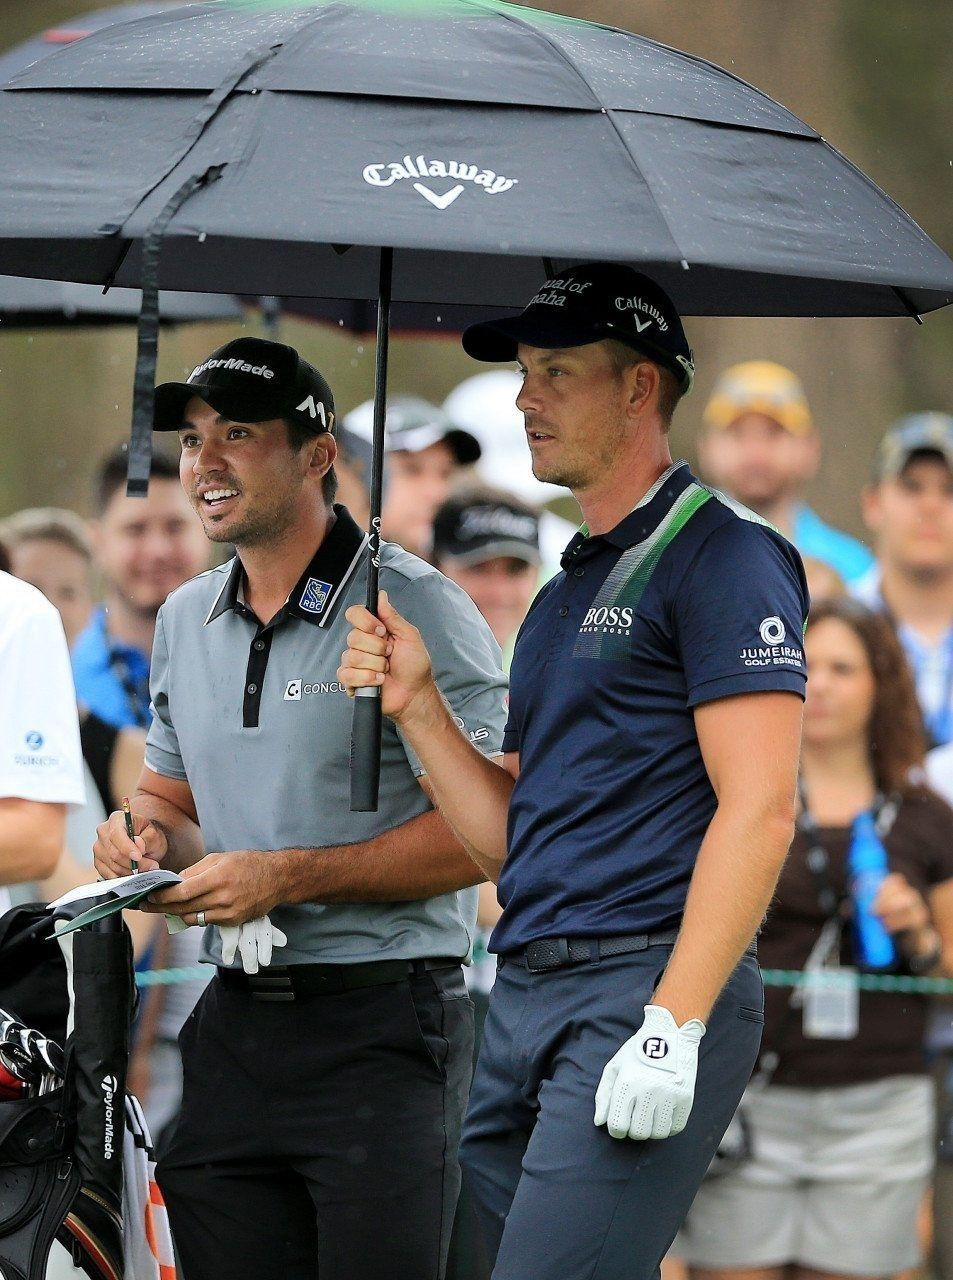 2016 - Jason Day and Henrik Stenson take cover under an umbrella on Saturday during the Arnold Palmer Invitational at Bay Hill Club and Lodge.